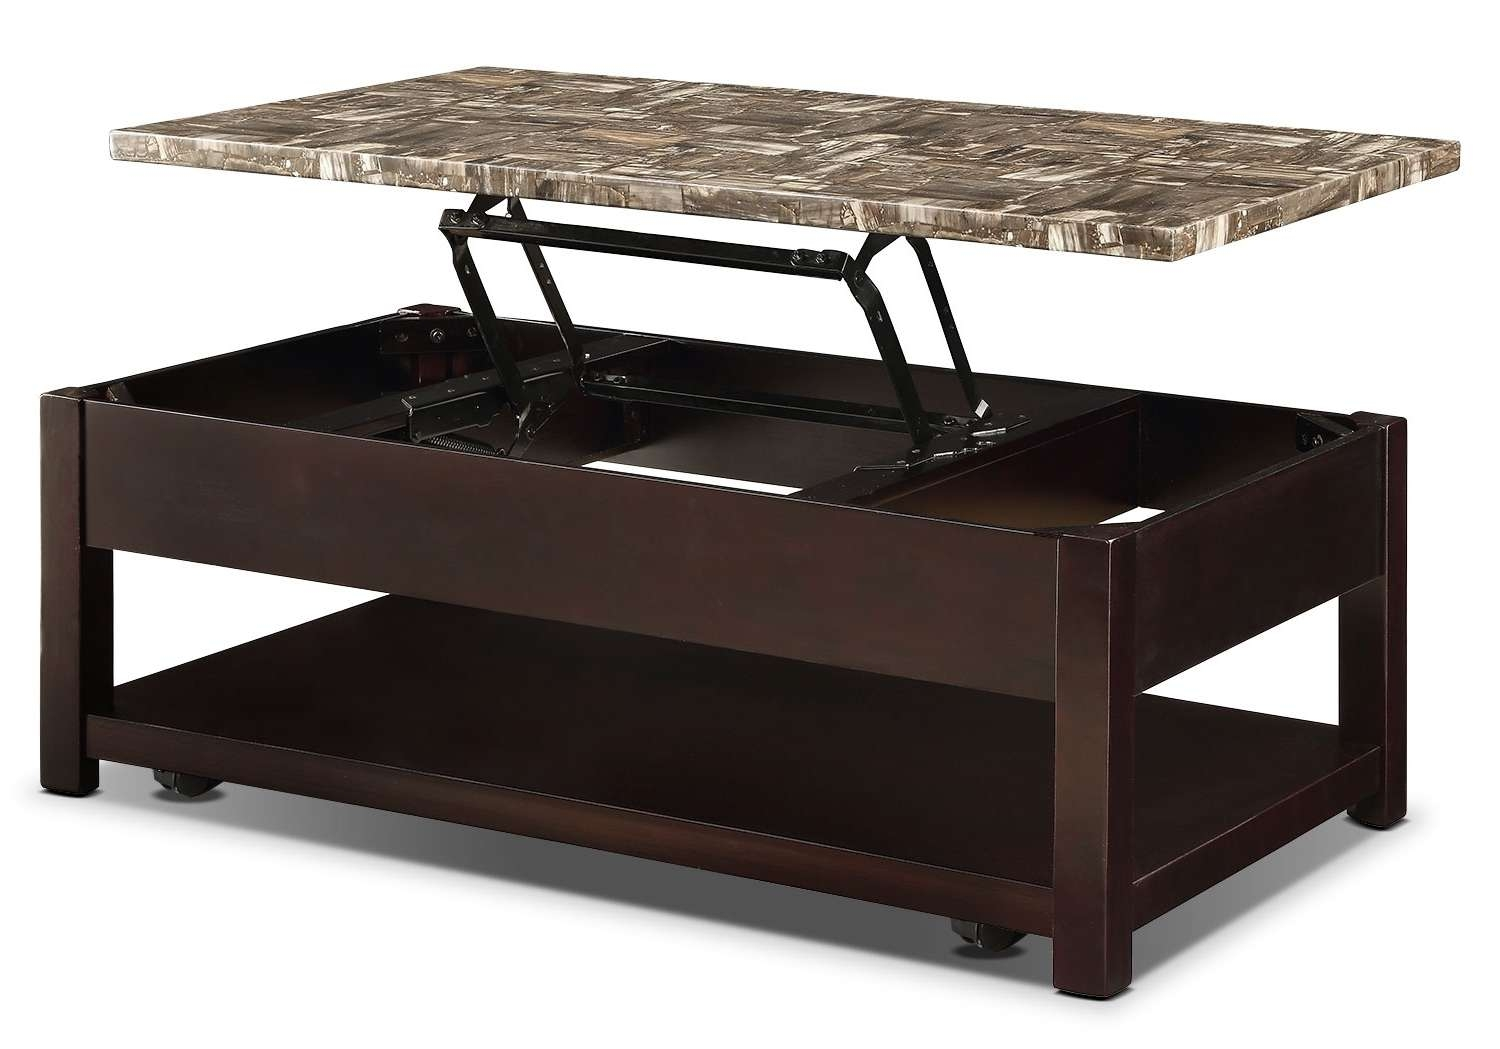 Most Recently Released Square Coffee Tables Intended For Square Side Table Tags : Splendid Square Coffee Tables Astonishing (View 6 of 20)